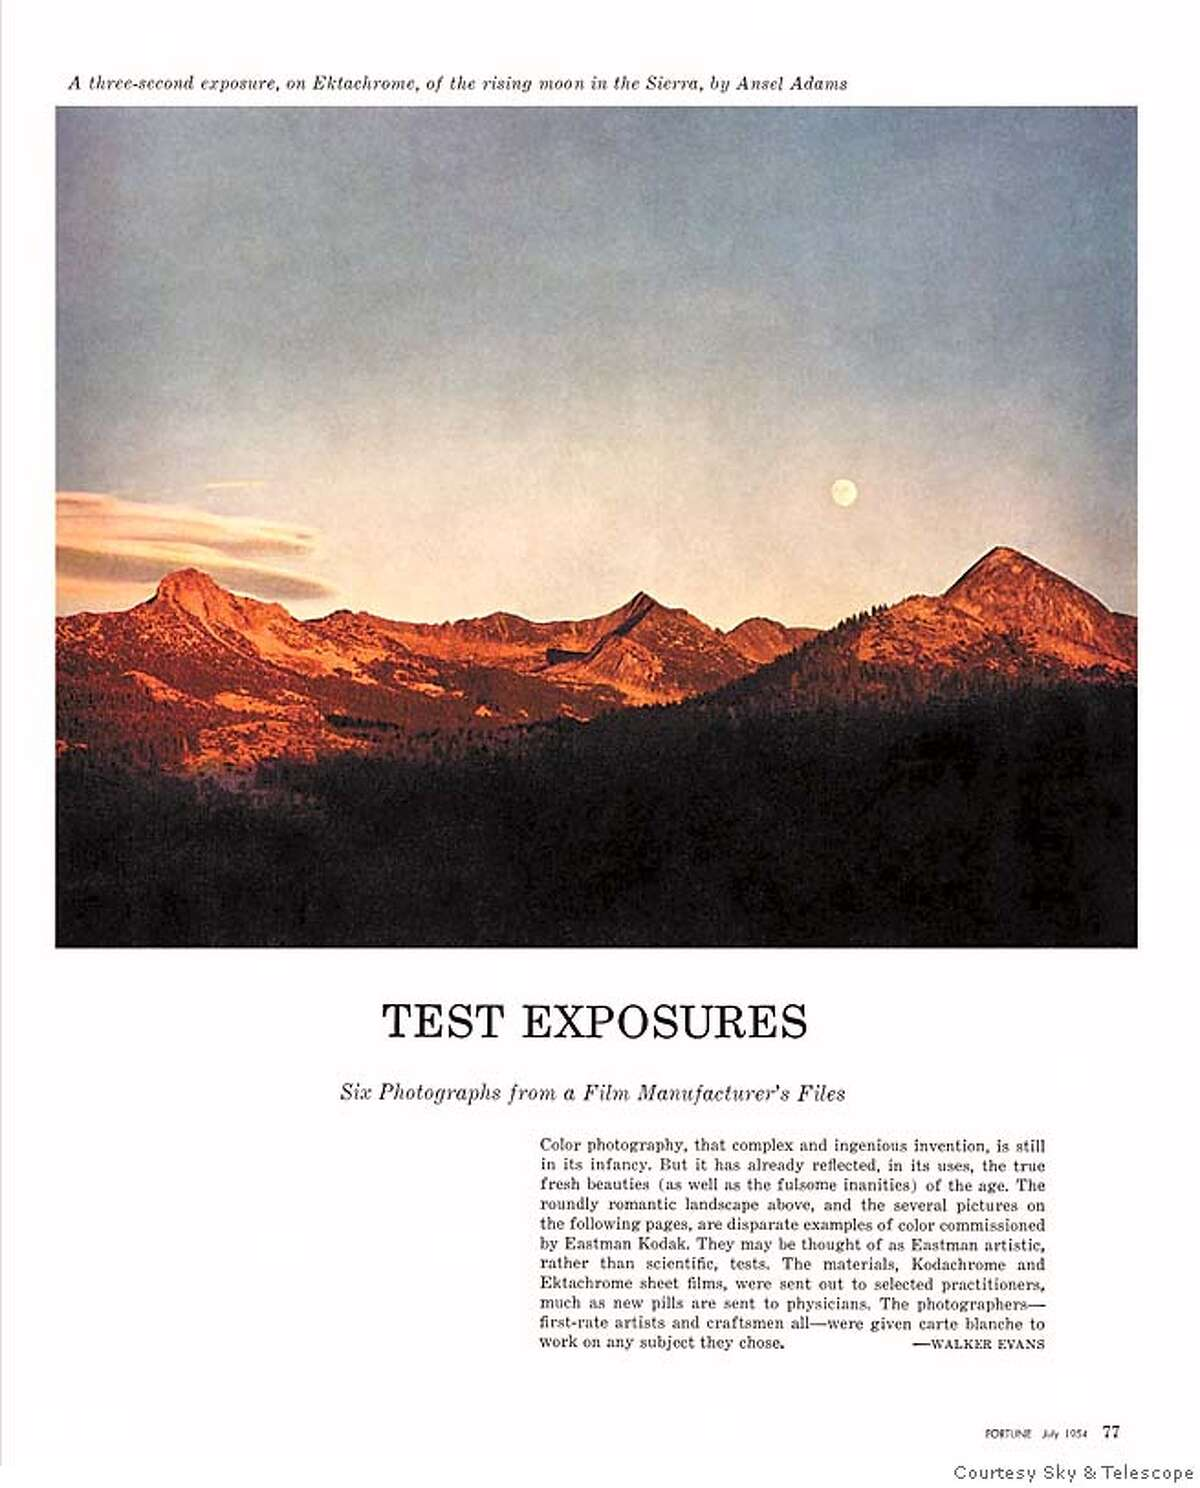 This image of the page must be reproduced in full -- you may not crop out any part of it, and you especially may not lift the Ansel Adams image it contains and run it alone. We have permission from the Trust to display the Ansel Adams on the Fortune page only if the *entire* page on which it sits is reproduced, so that it is immediately clear that this is a reproduction of a magazine page, not a stand-alone piece of Ansel Adams' work. Reproducing the page in black and white is not a problem as long as you reproduce the whole page. Please run the credit line